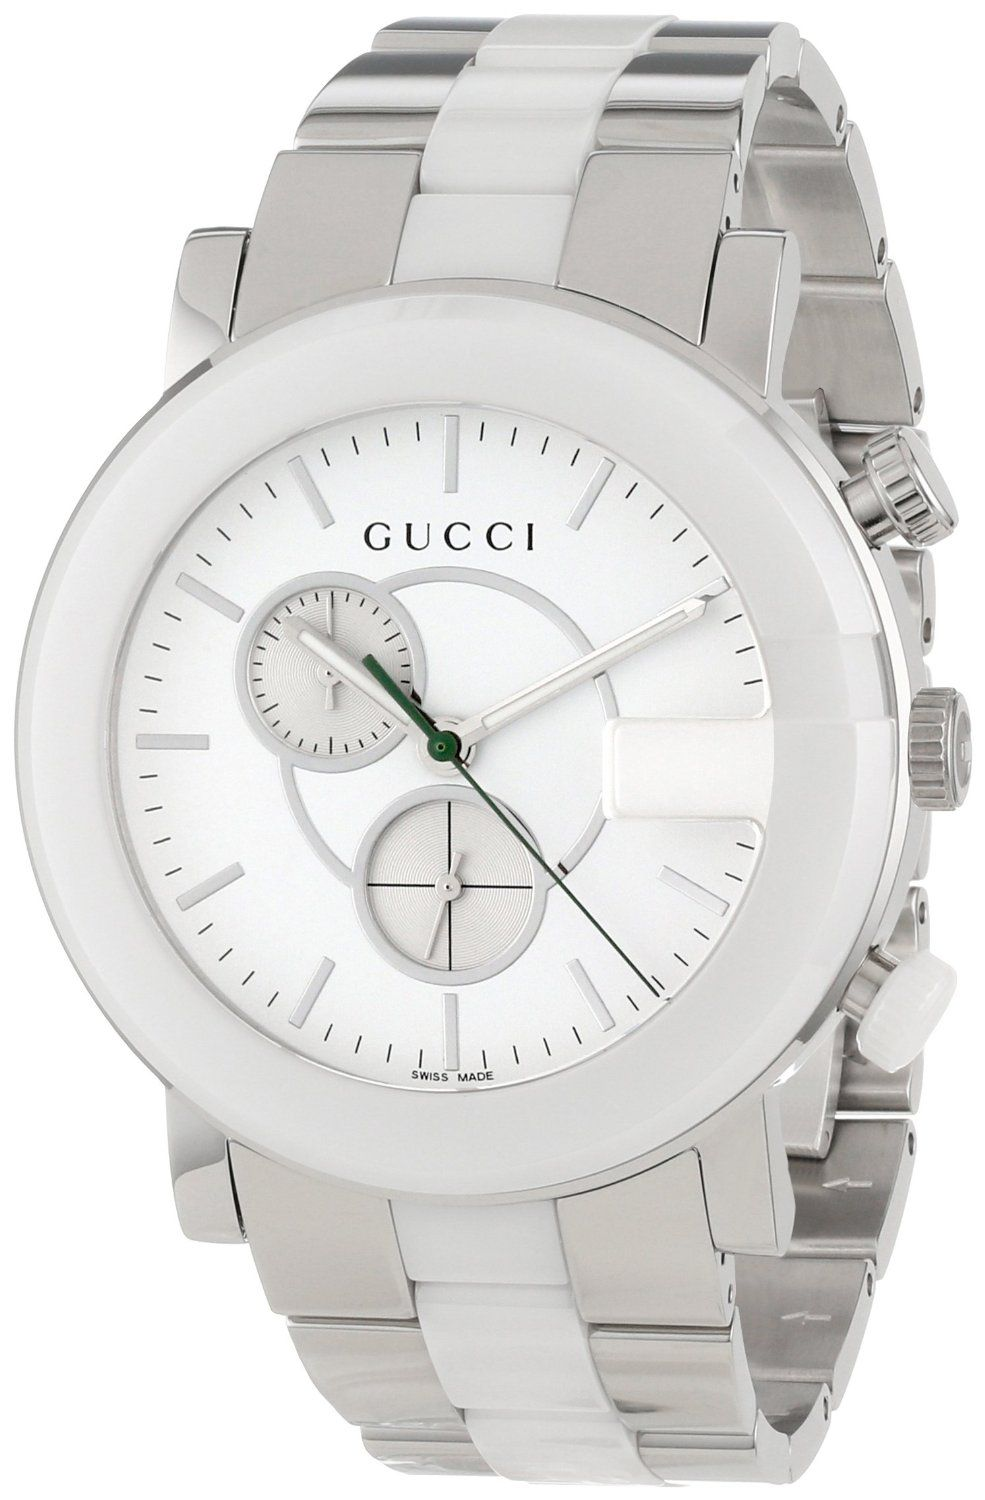 15baa56428a Gucci Watch